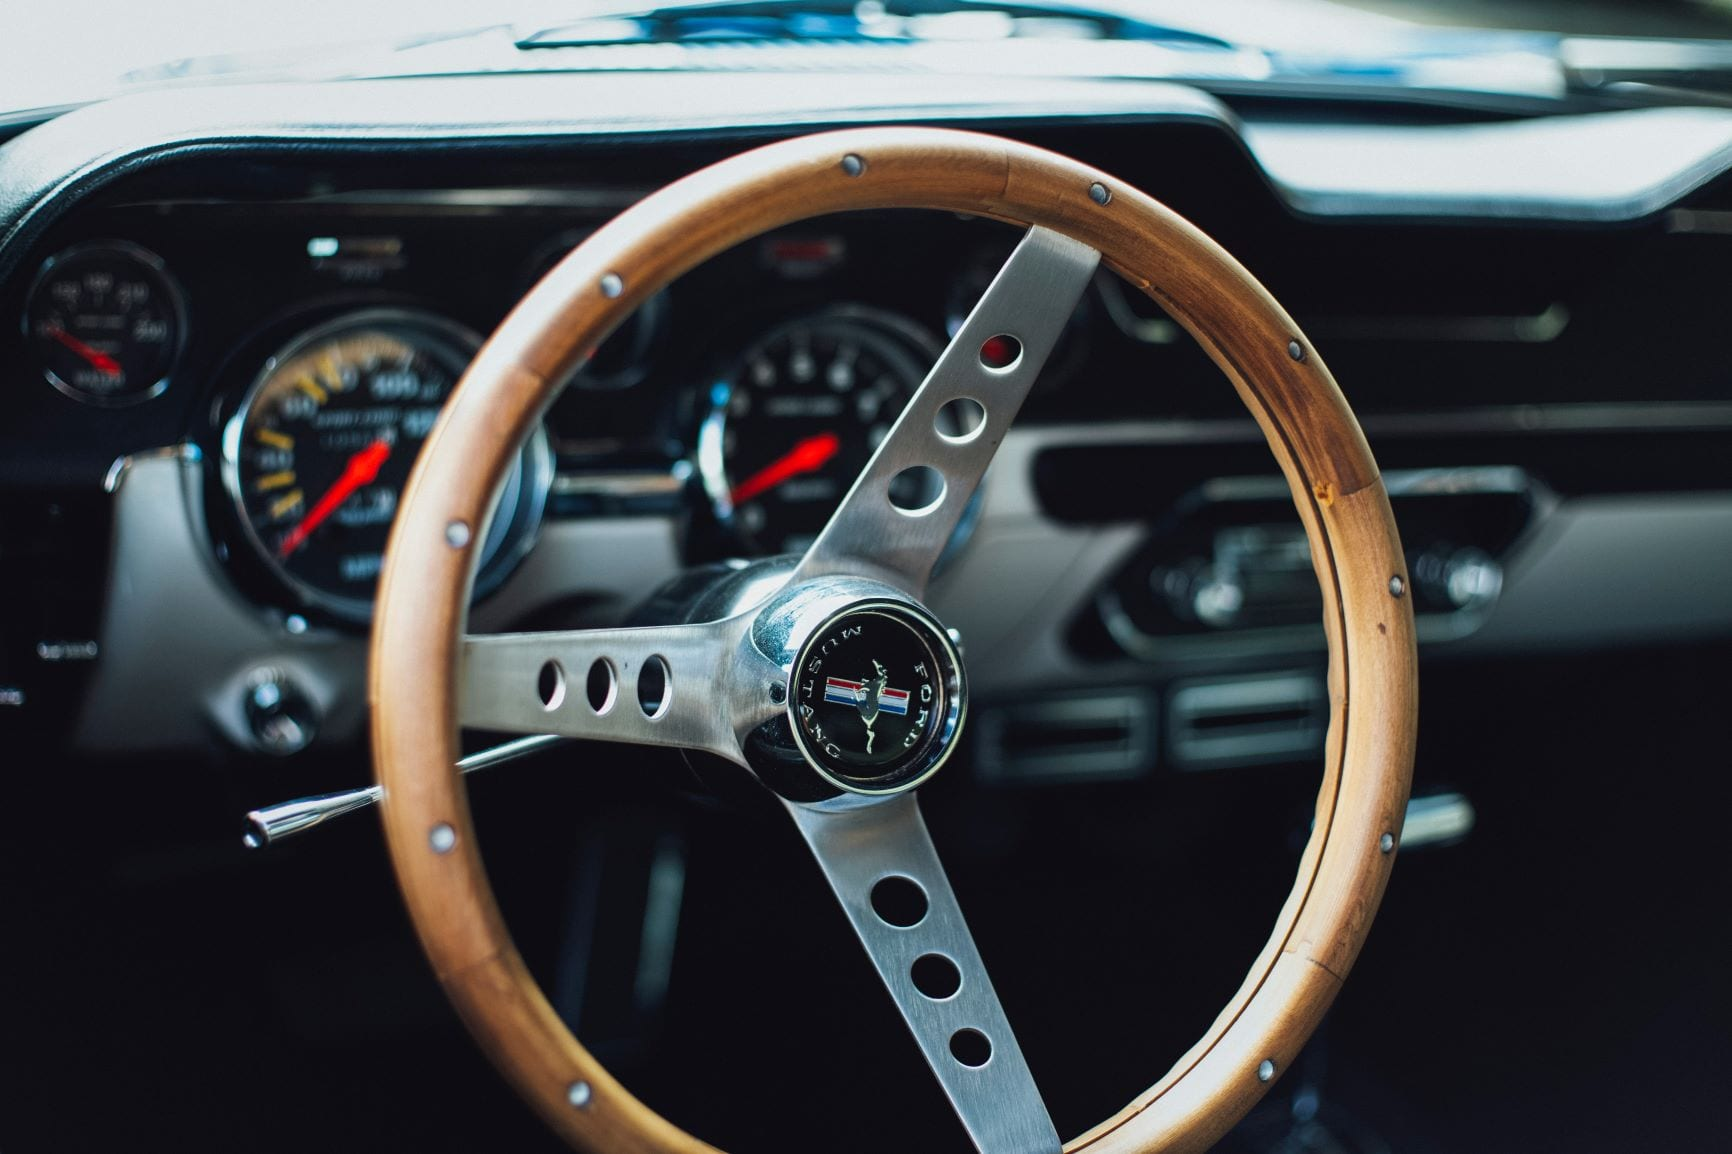 The interior of a classic Ford Mustang.